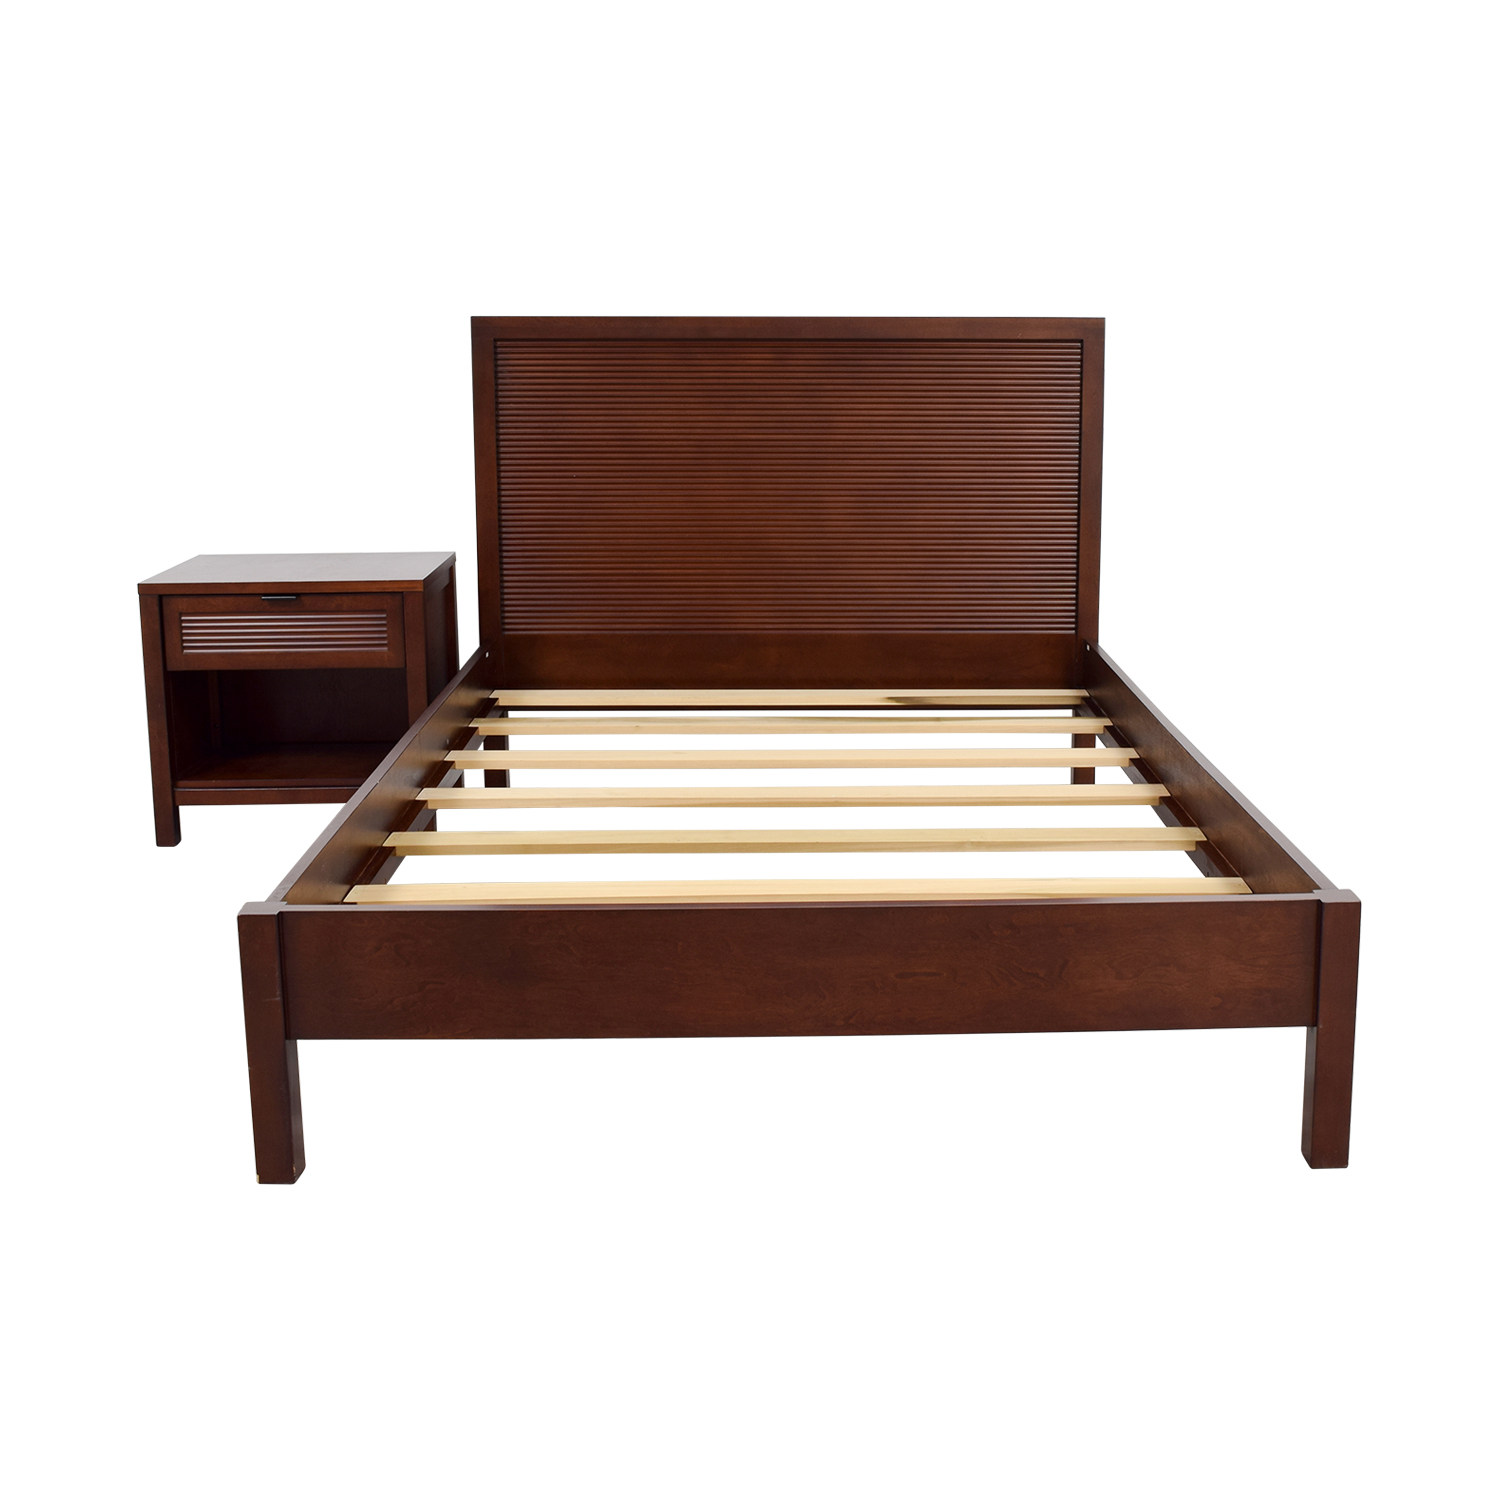 Crate & Barrel Crate & Barrel Full Platform Bed and Night Stand price